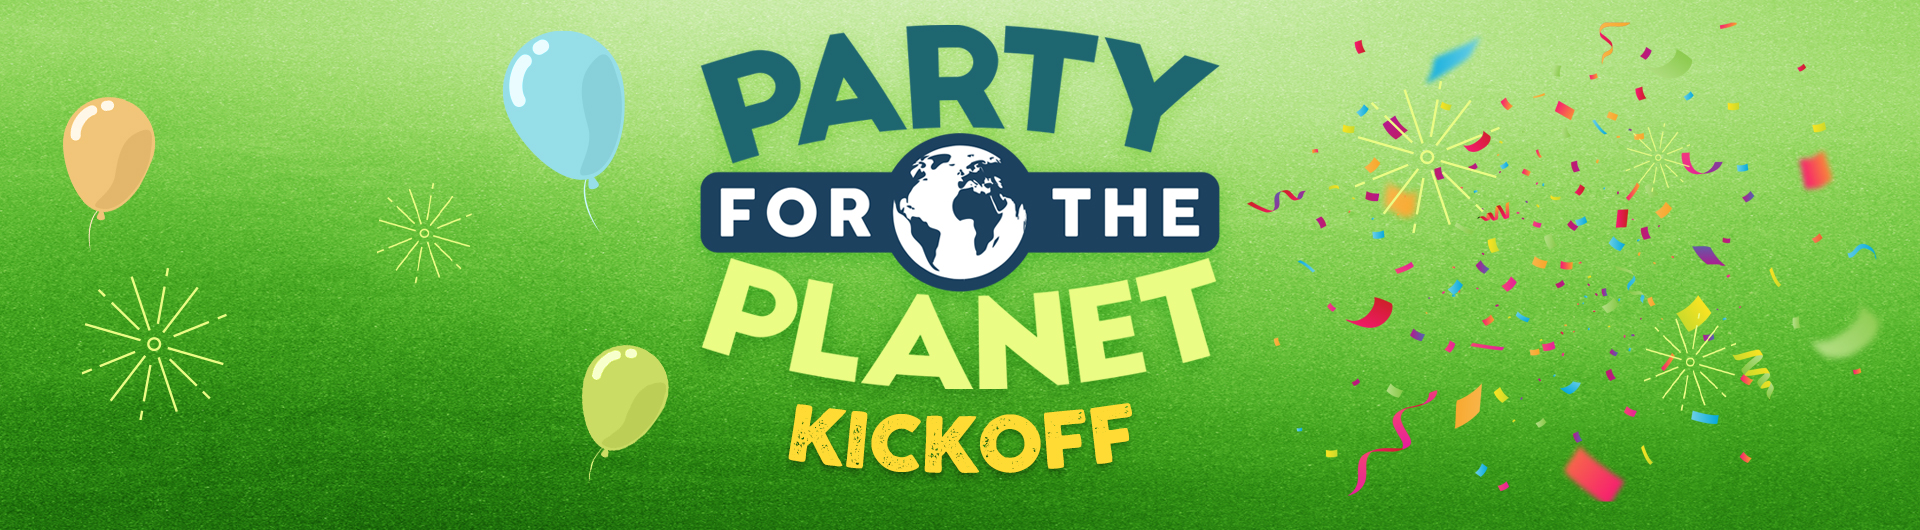 Party for the Planet Kickoff Header Image